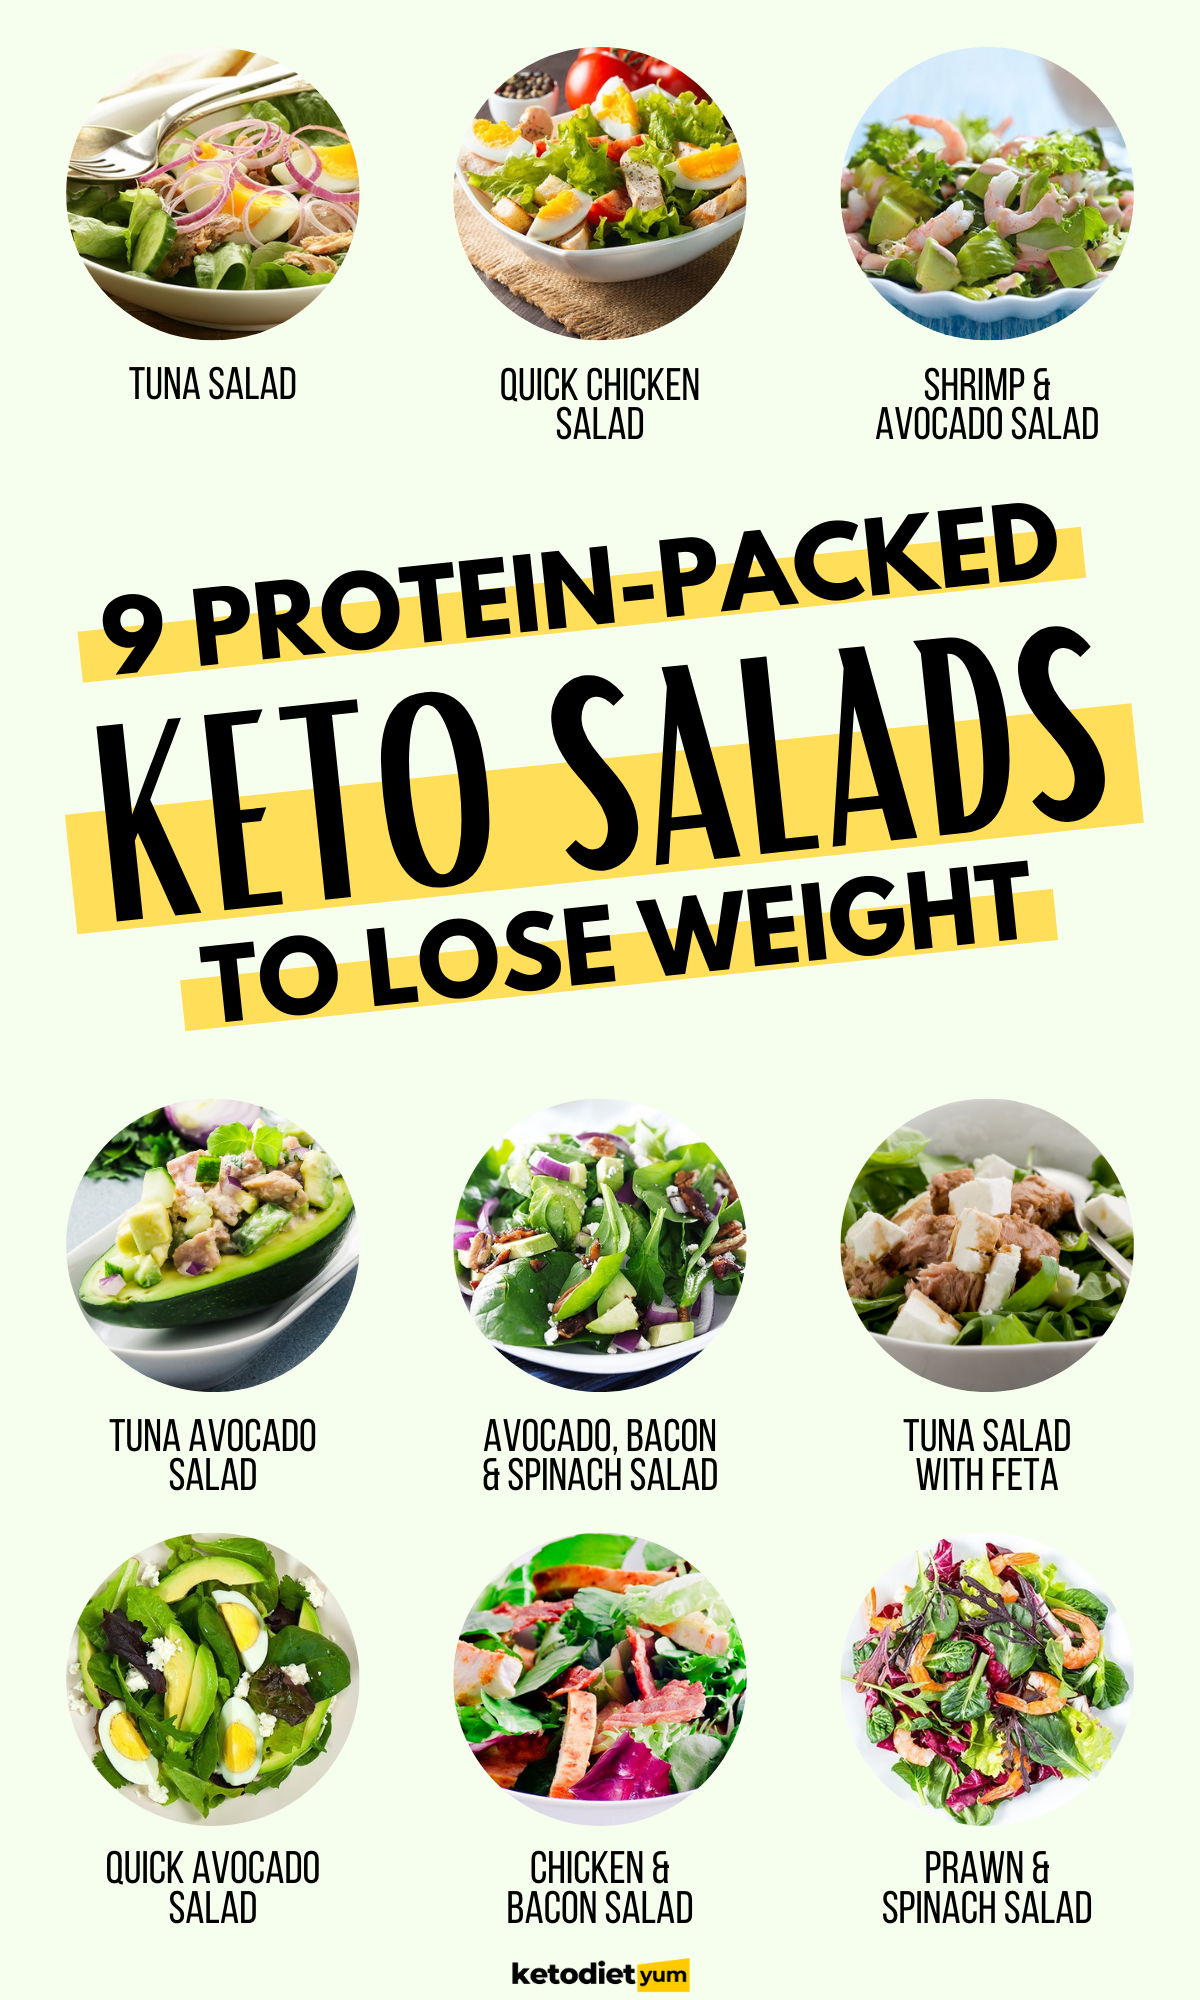 10 easy and tasty low-carb keto salad recipes for weight loss. Salads are healthy, nutritious and low-carbs. They're perfect for losing weight and to add to your keto menu.